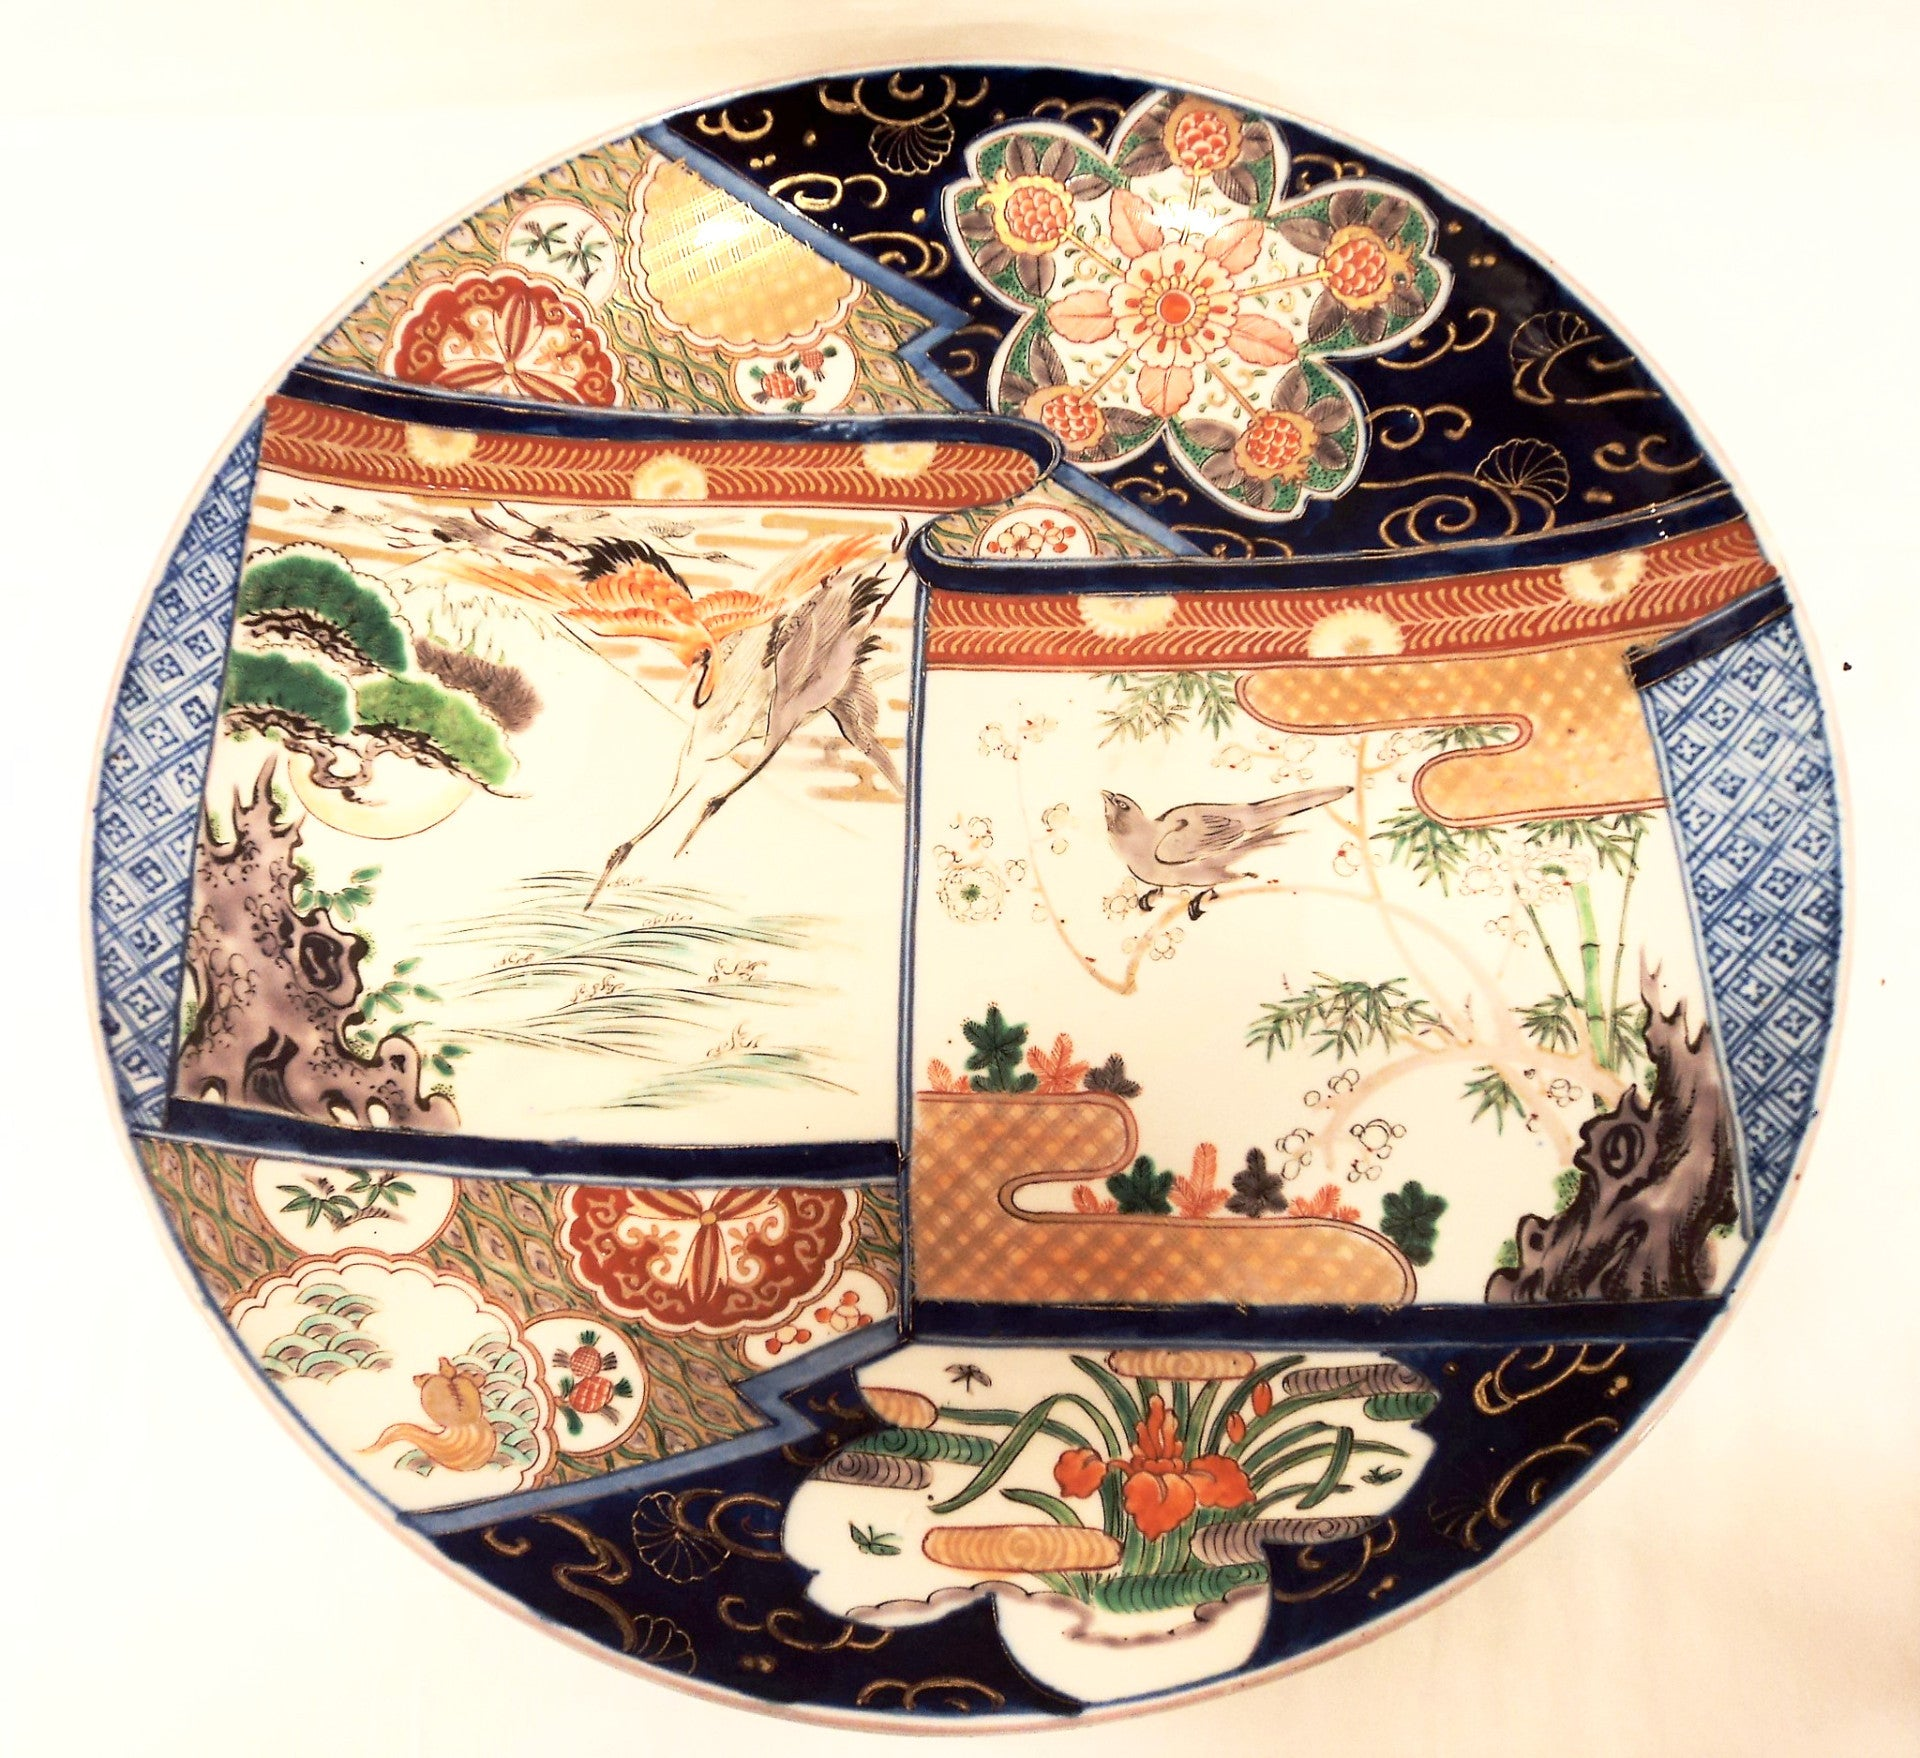 19th C. Japanese Imari Porcelain Charger